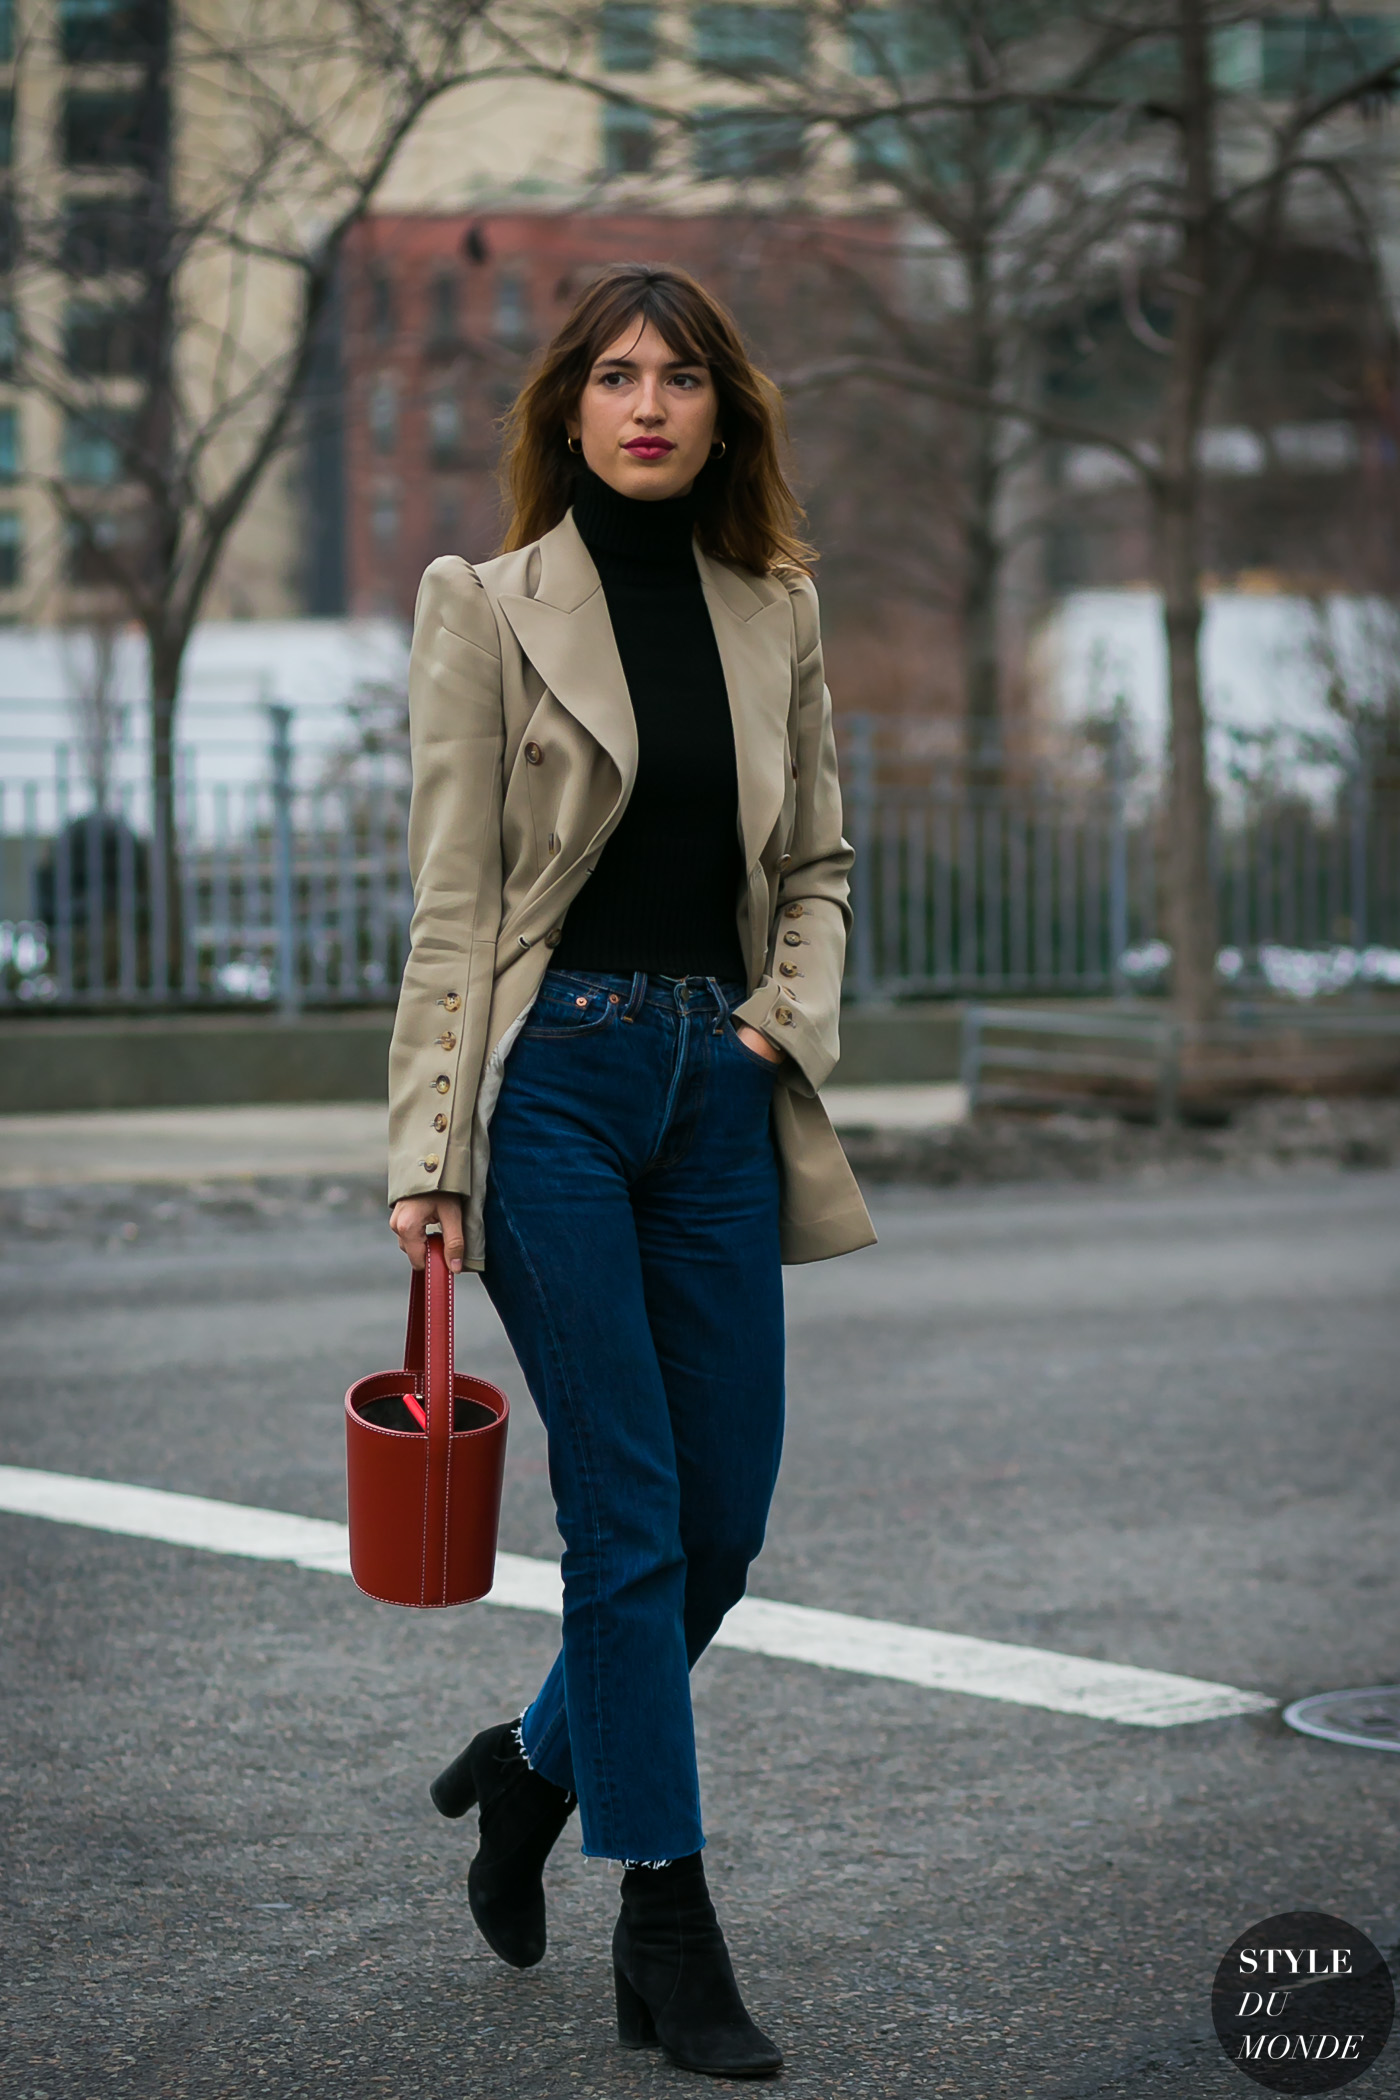 Jeanne Damas by STYLEDUMONDE Street Style Fashion Photography